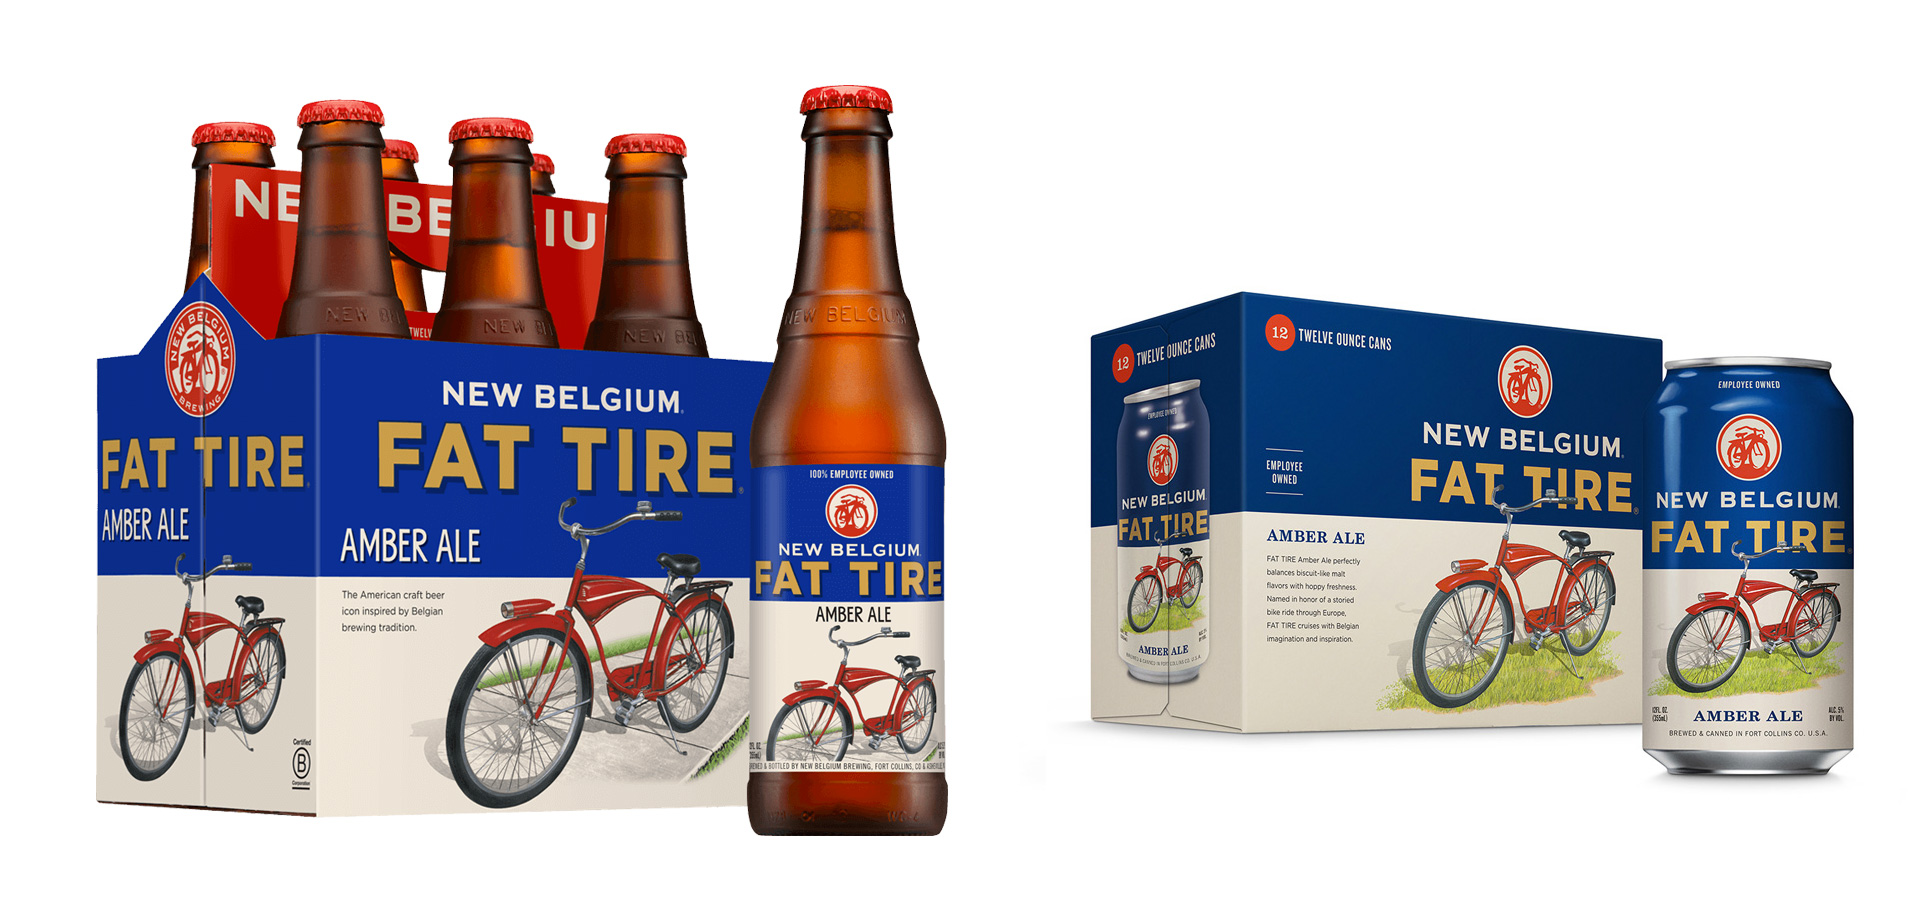 brand   logo  packaging  fat tire  durham brand